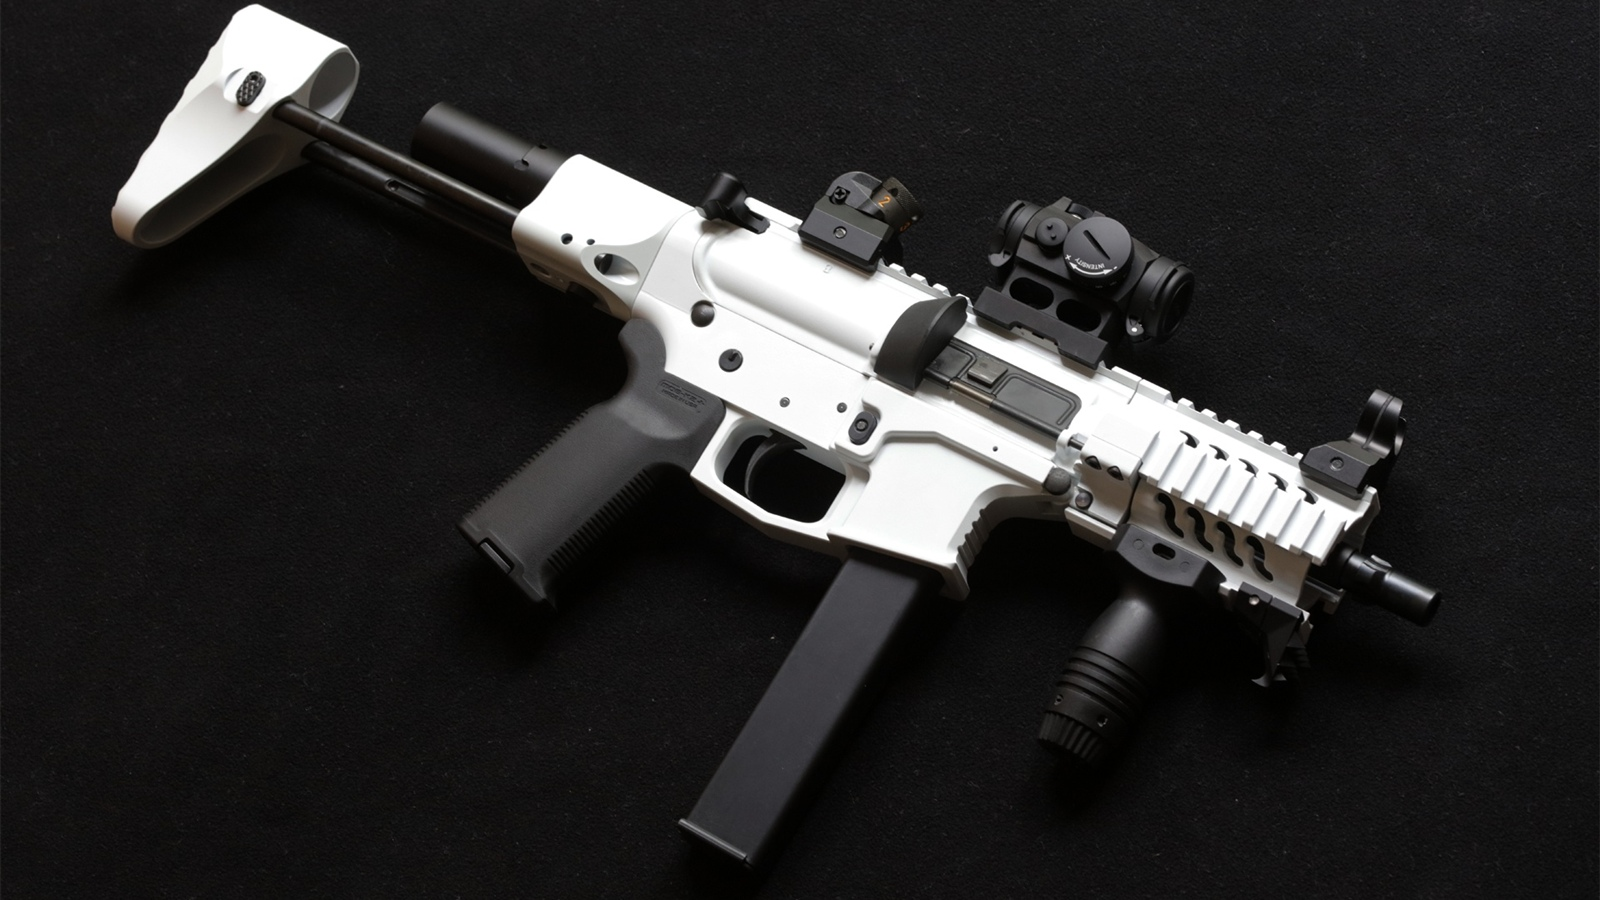 AR-15 style rifle, weapon 1600x900 wallpaper